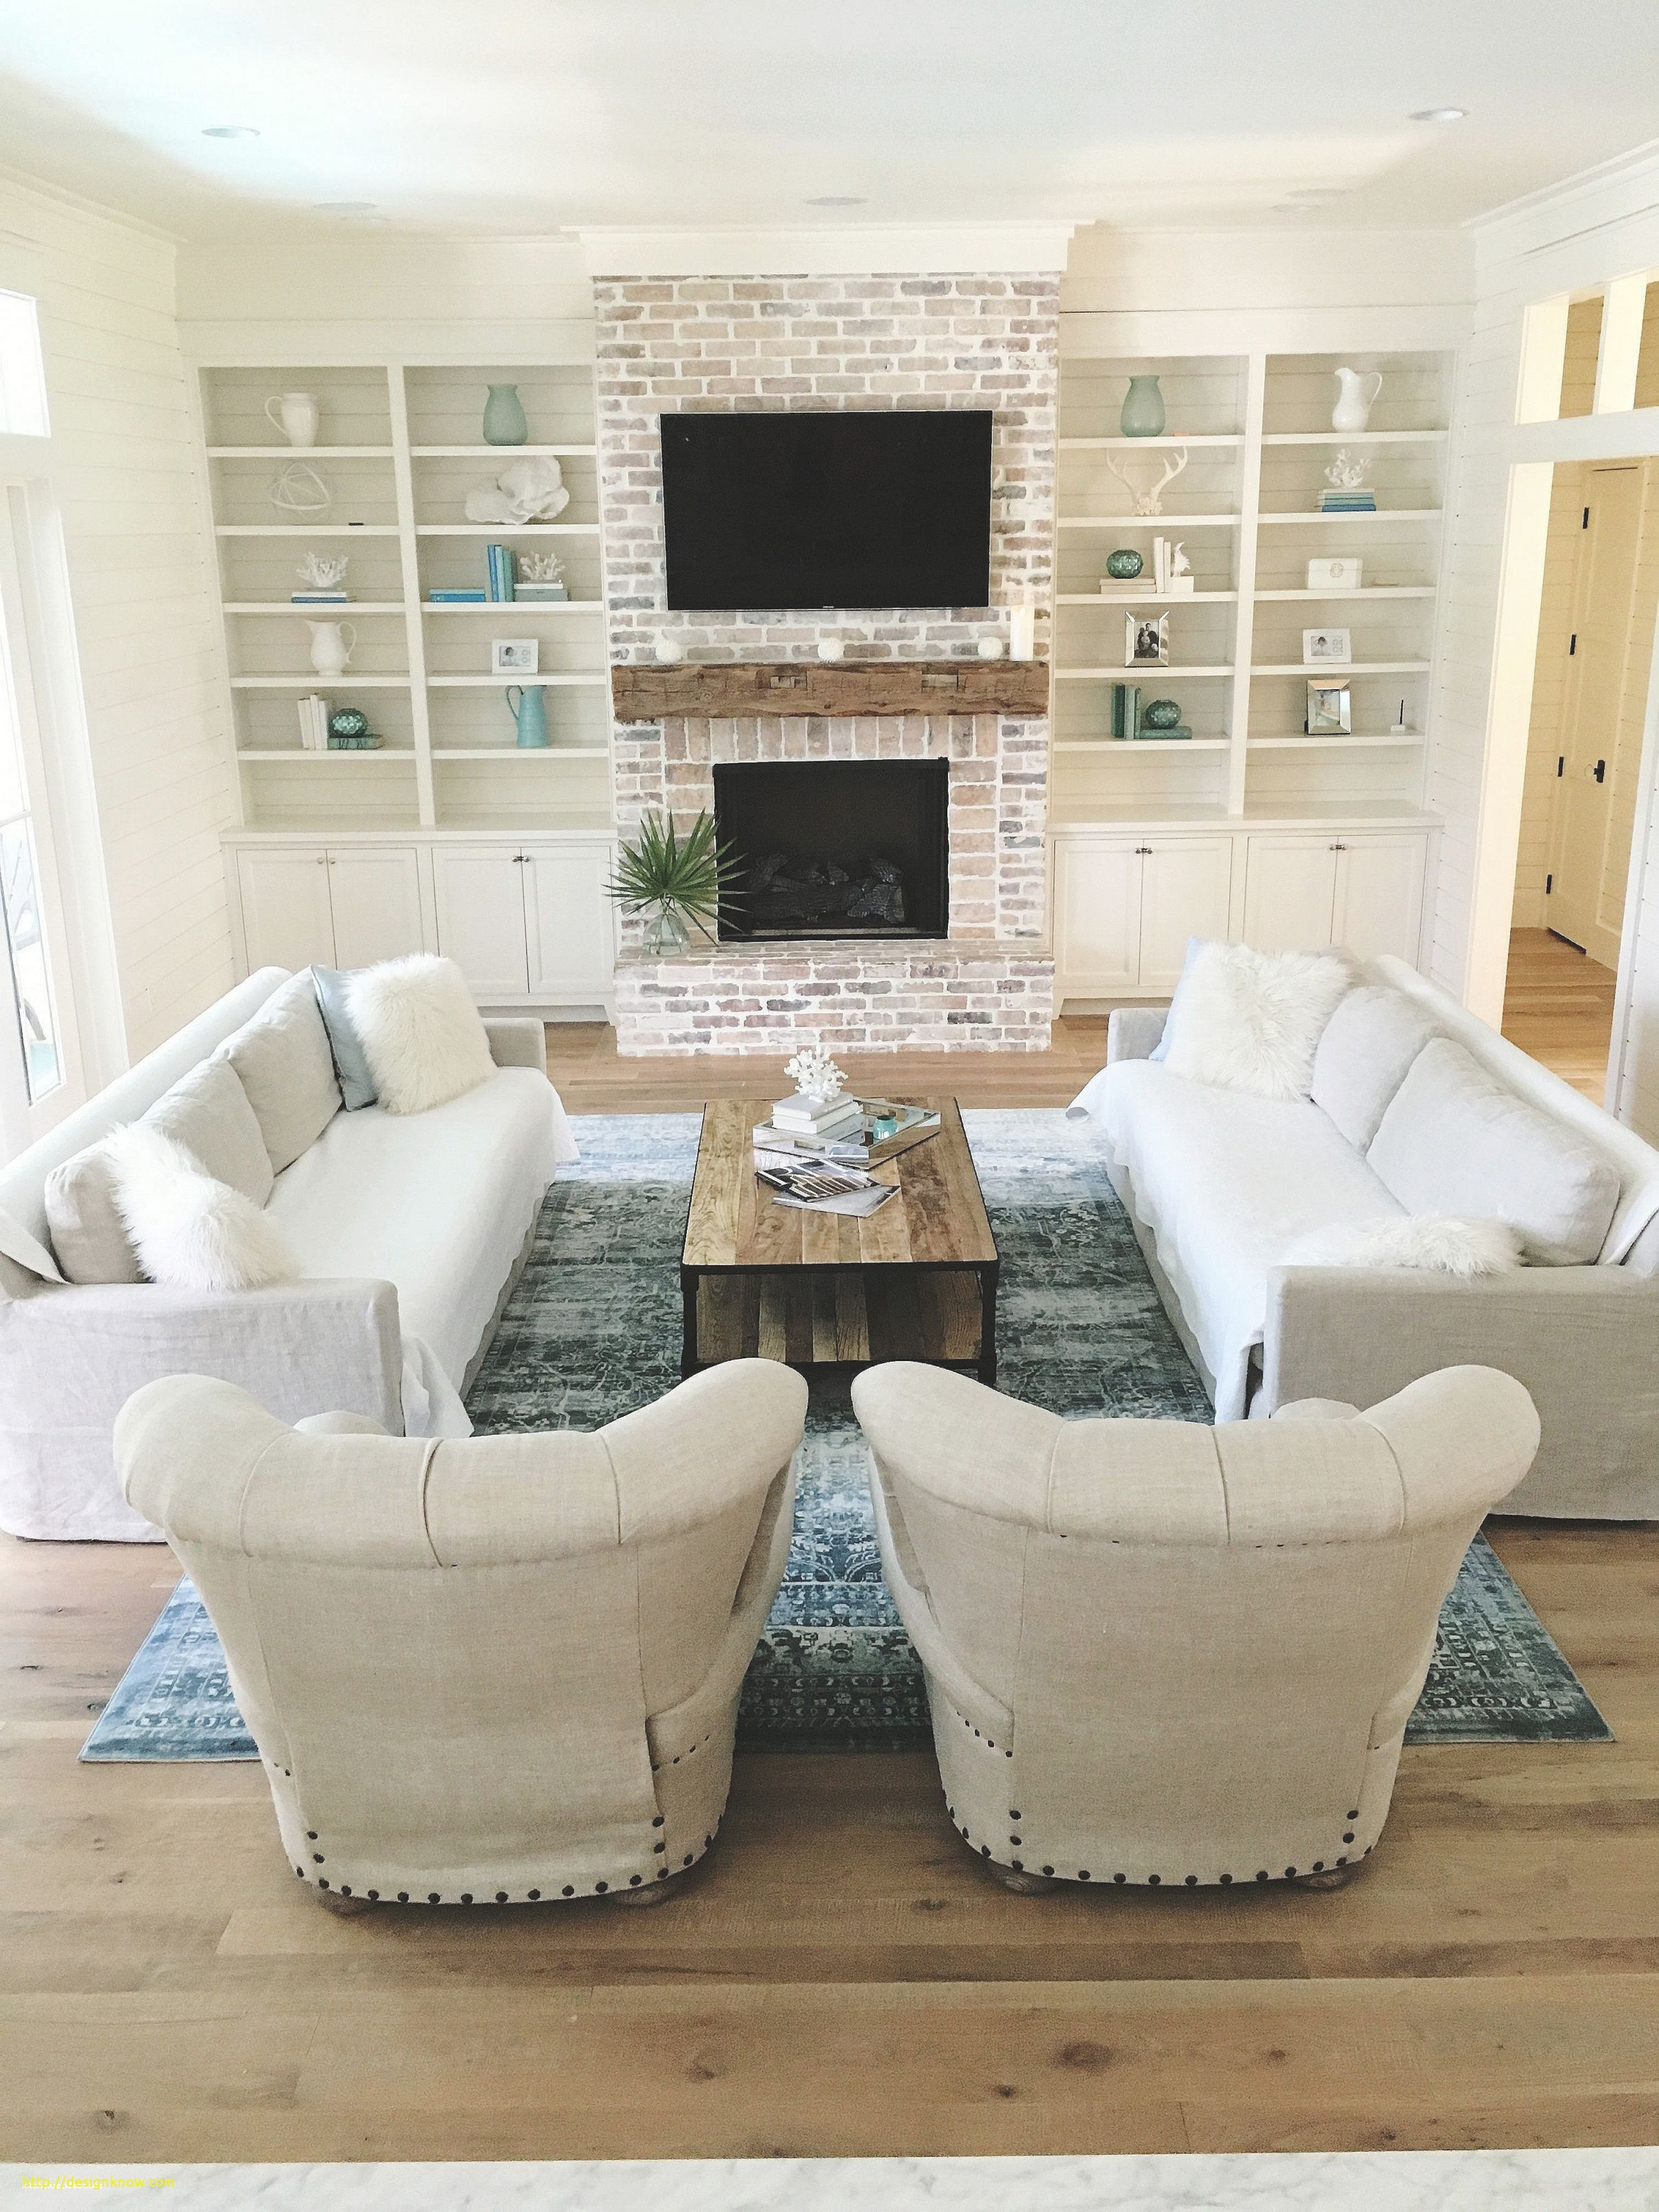 Awesome Apartment Living Room Decor Ideas - Awesome Decors